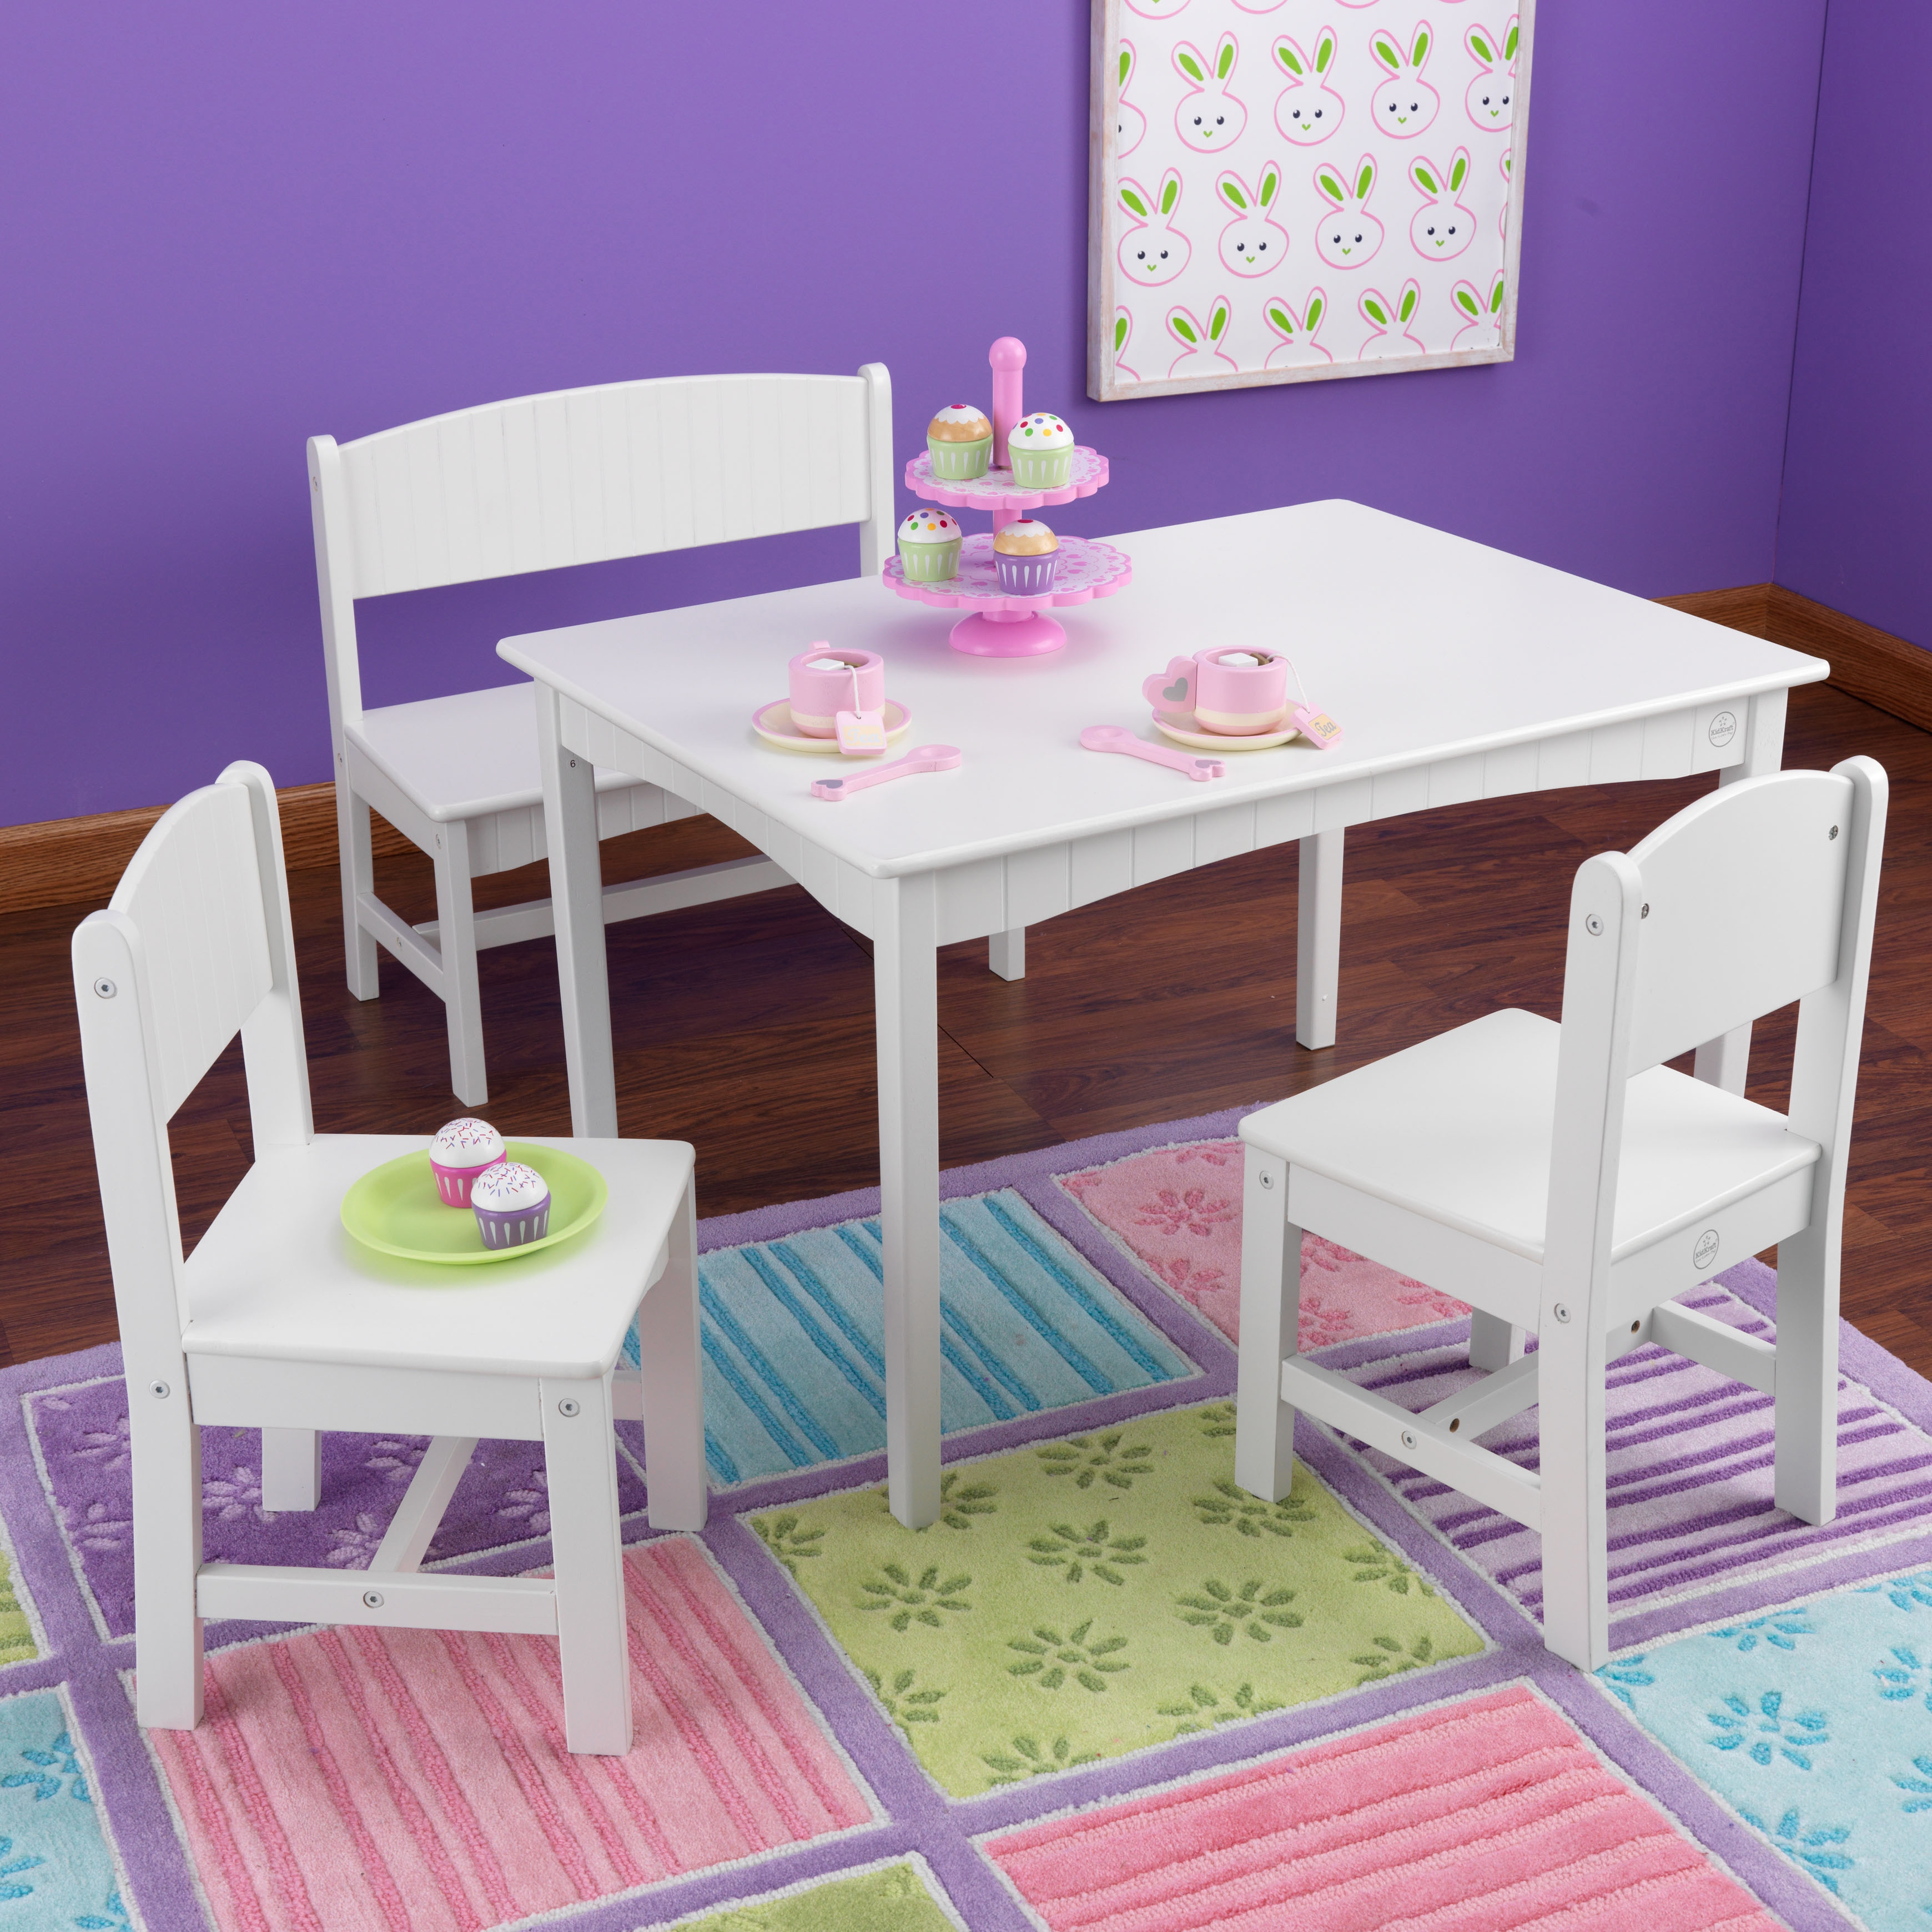 Shop KidKraft Nantucket 4-piece Table Bench and Chairs Set - Free Shipping Today - Overstock.com - 9204485 & Shop KidKraft Nantucket 4-piece Table Bench and Chairs Set - Free ...